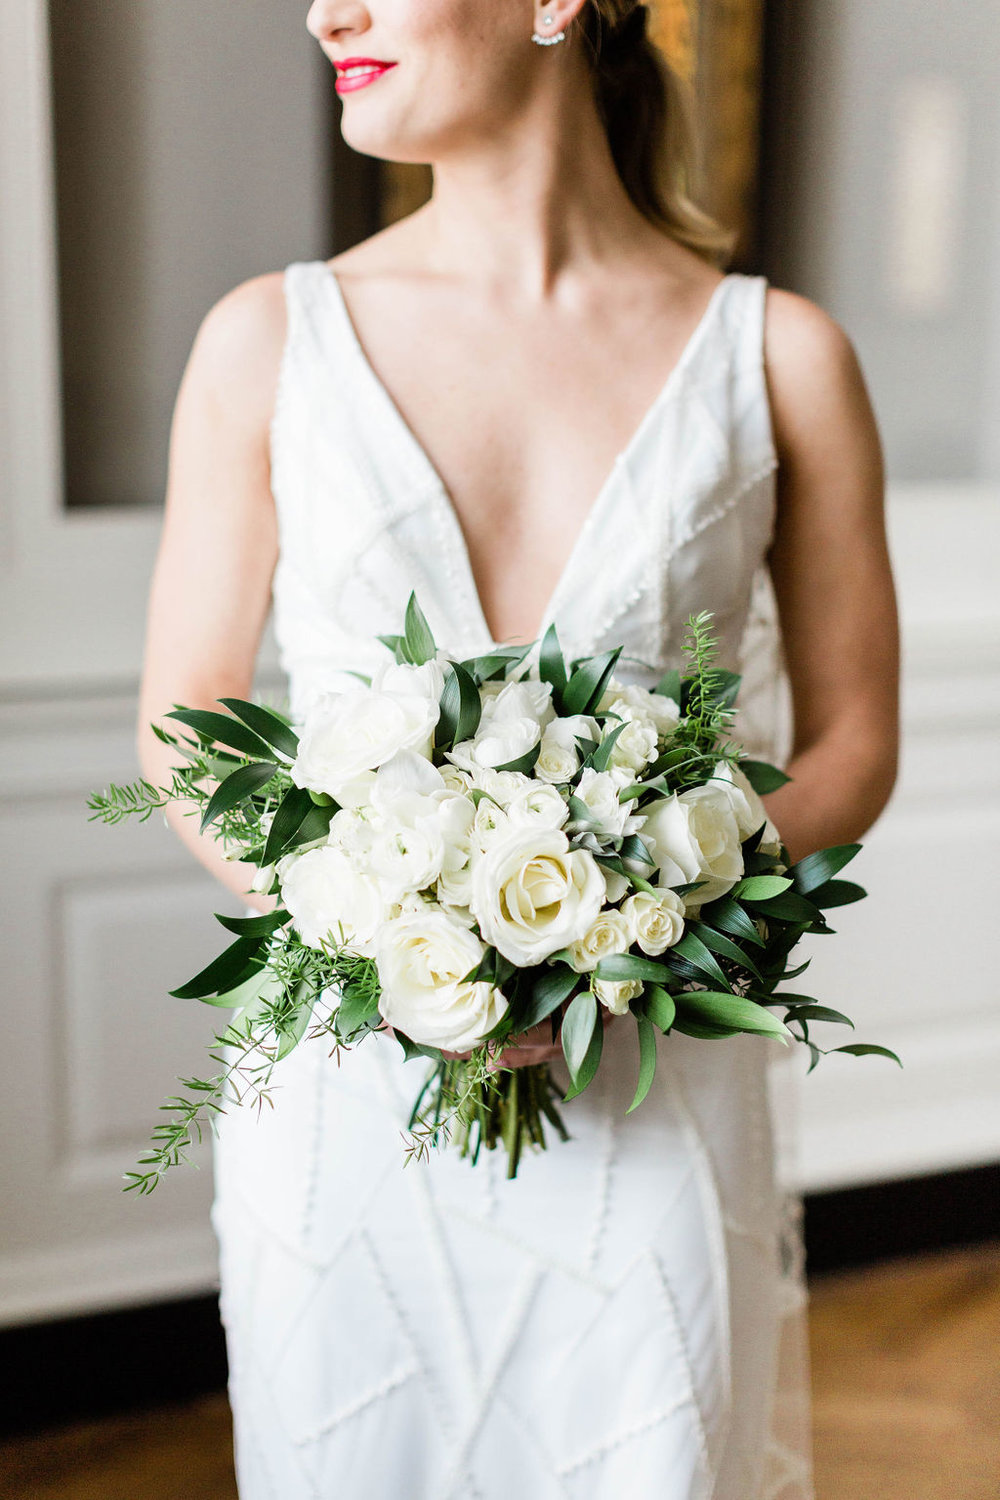 White Rose Bouquet | Varca Bridal | Chicago History Museum | Black and White Wedding | Black Tie Wedding | Your Day by MK | Chicago Wedding Planner |